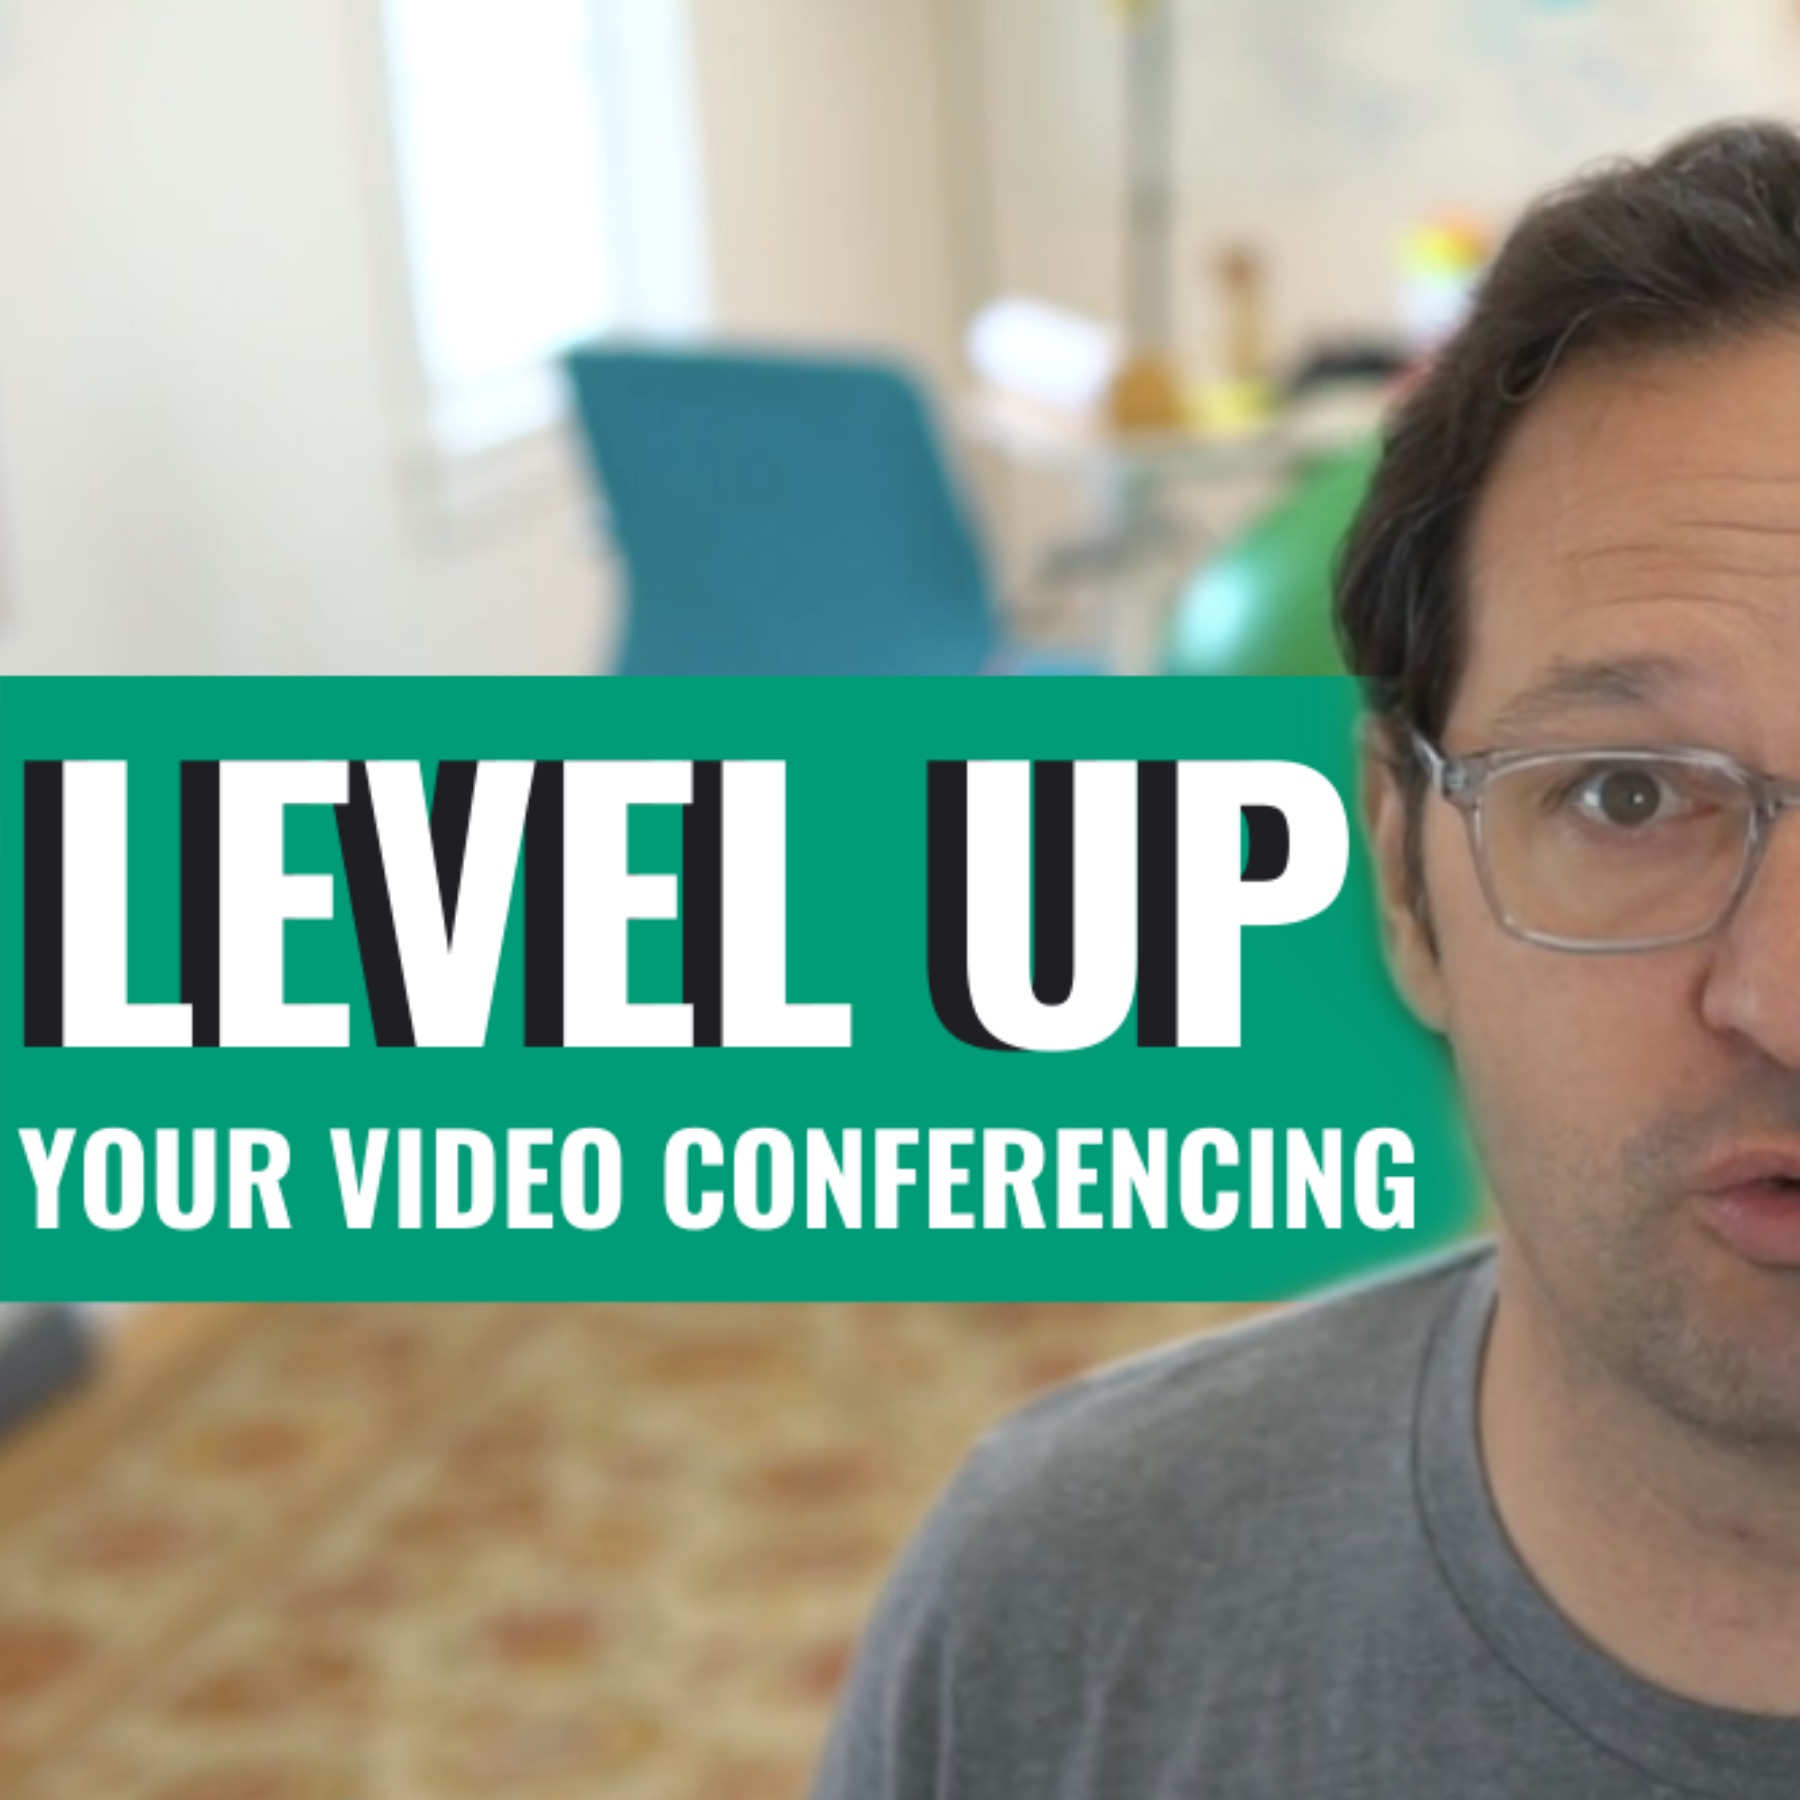 6 Tips For Video Conferencing